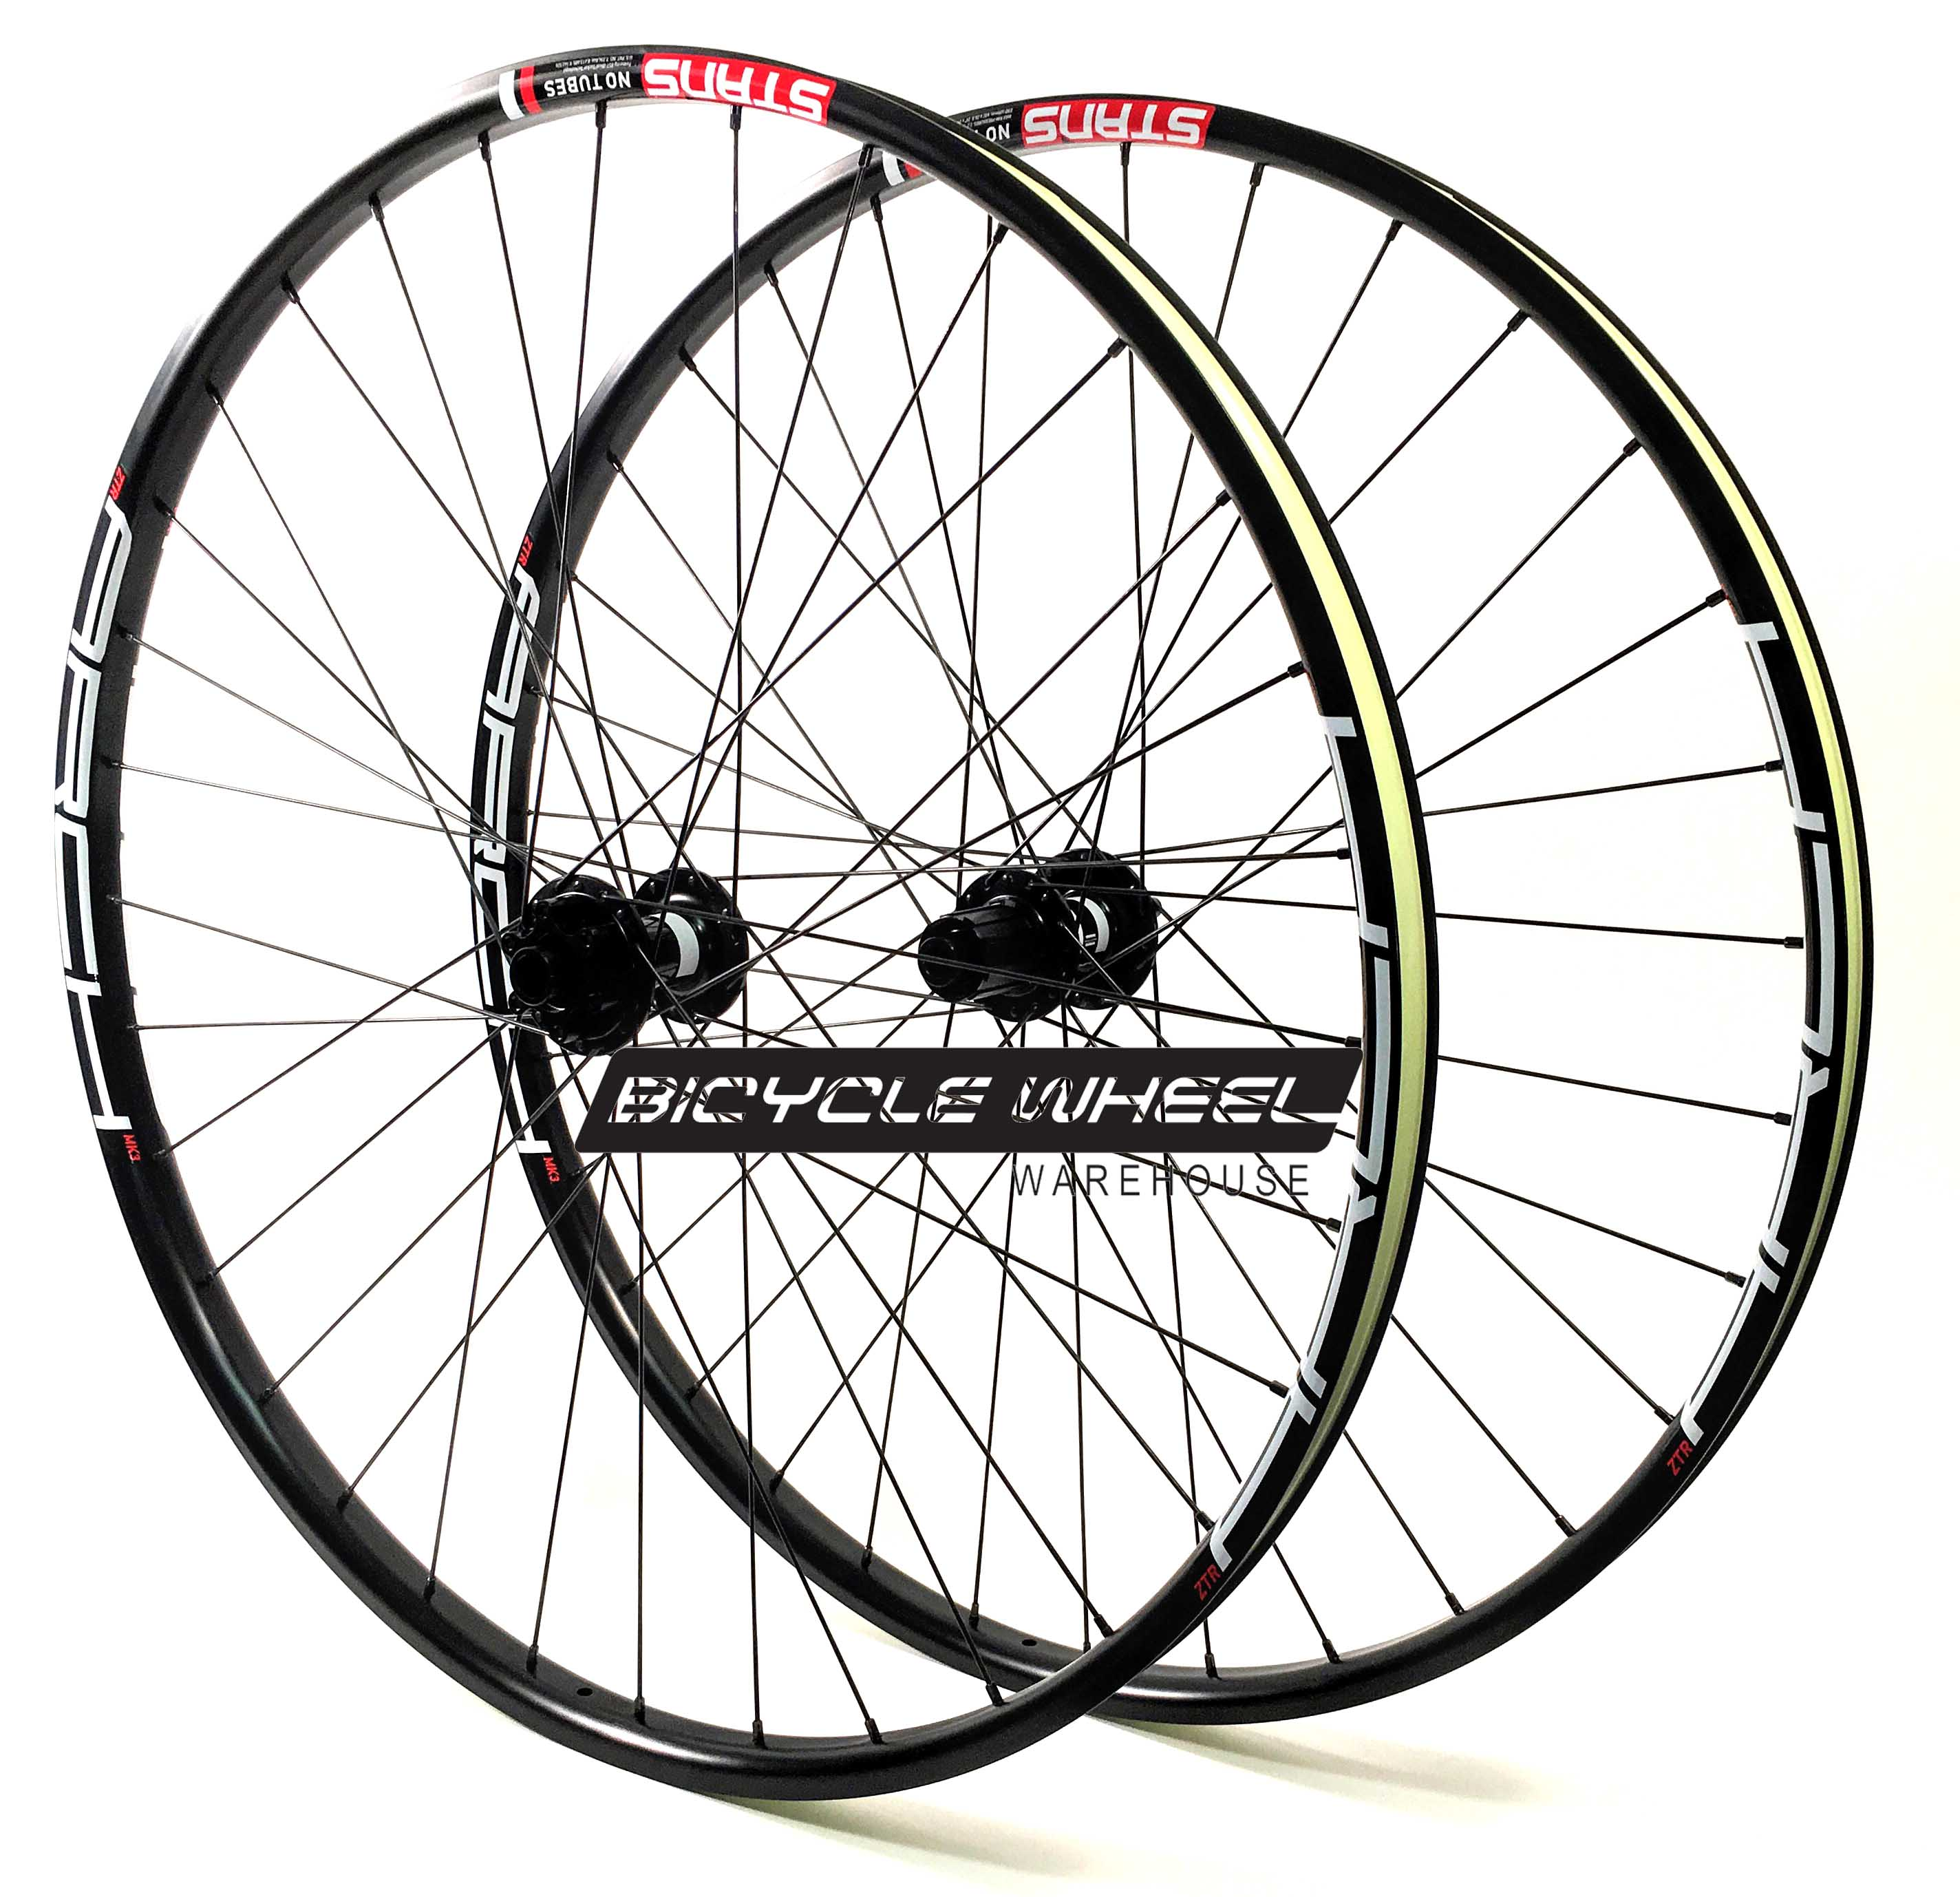 DT Swiss Competition Mountain Bike Wheel Set Stans Arch EX 27.5 Speed Tuned MTB